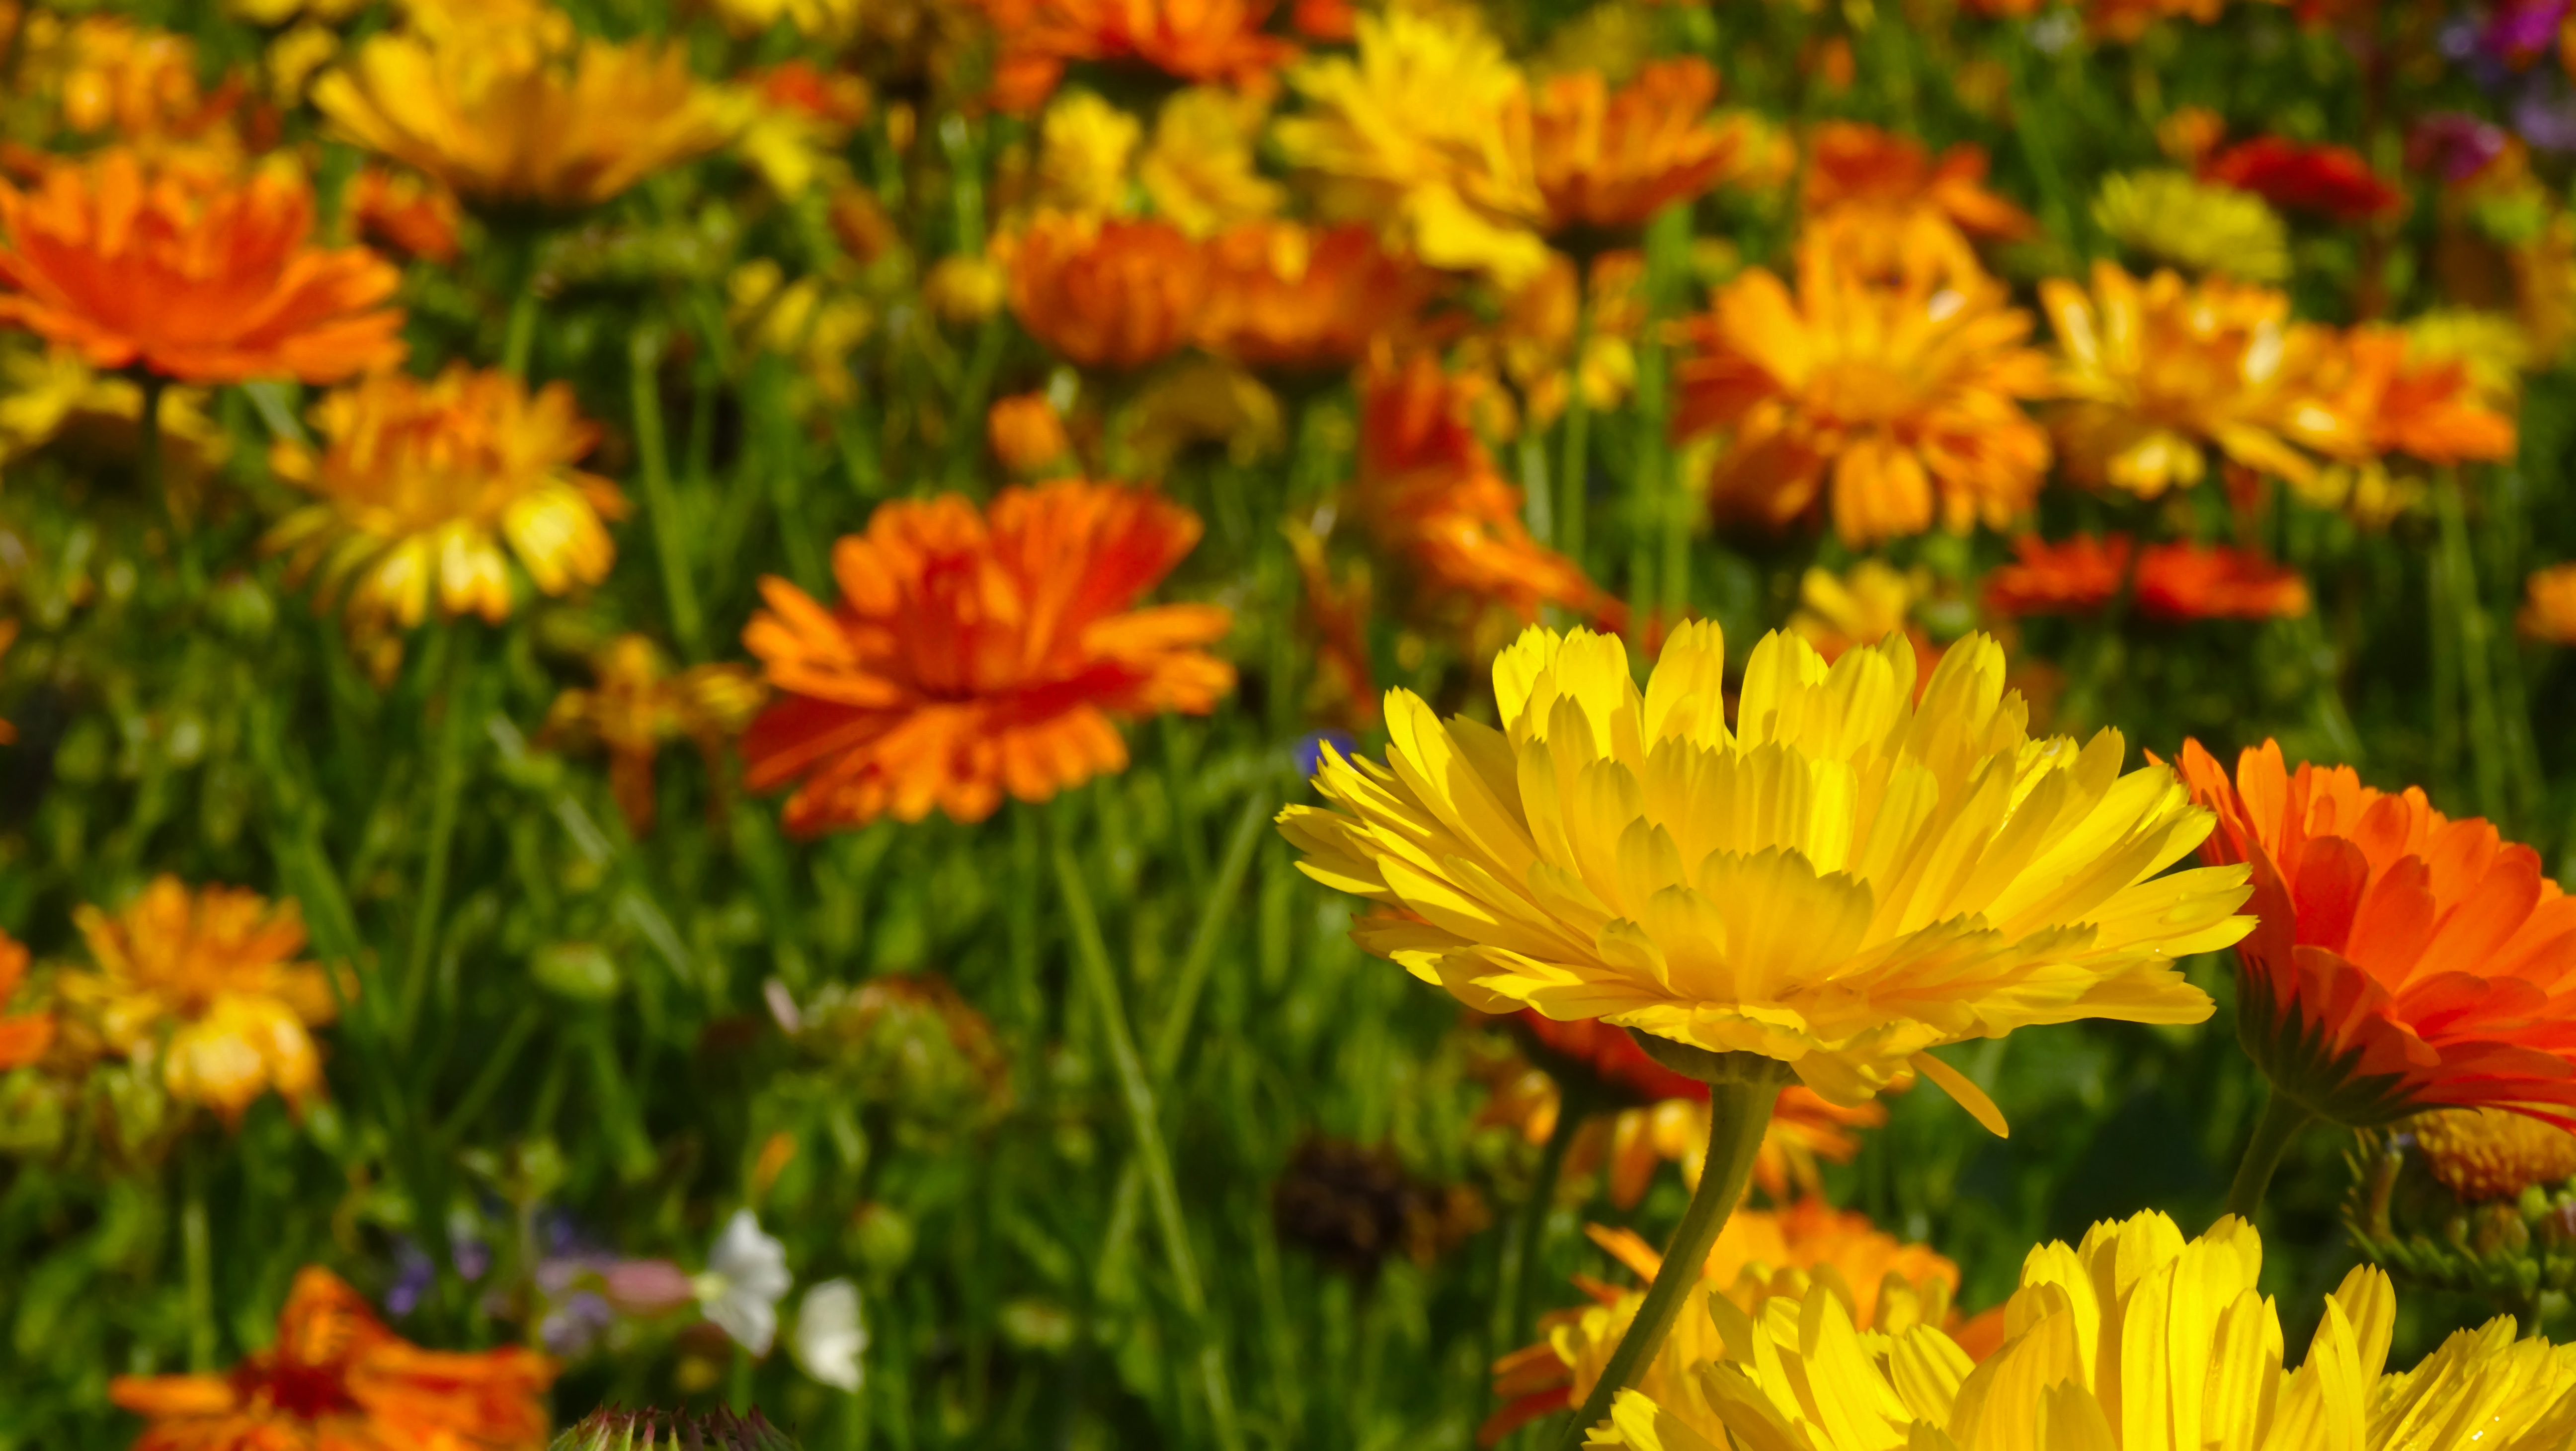 marigold-flowers-blutenmeer-flower-meadow-45173.jpeg